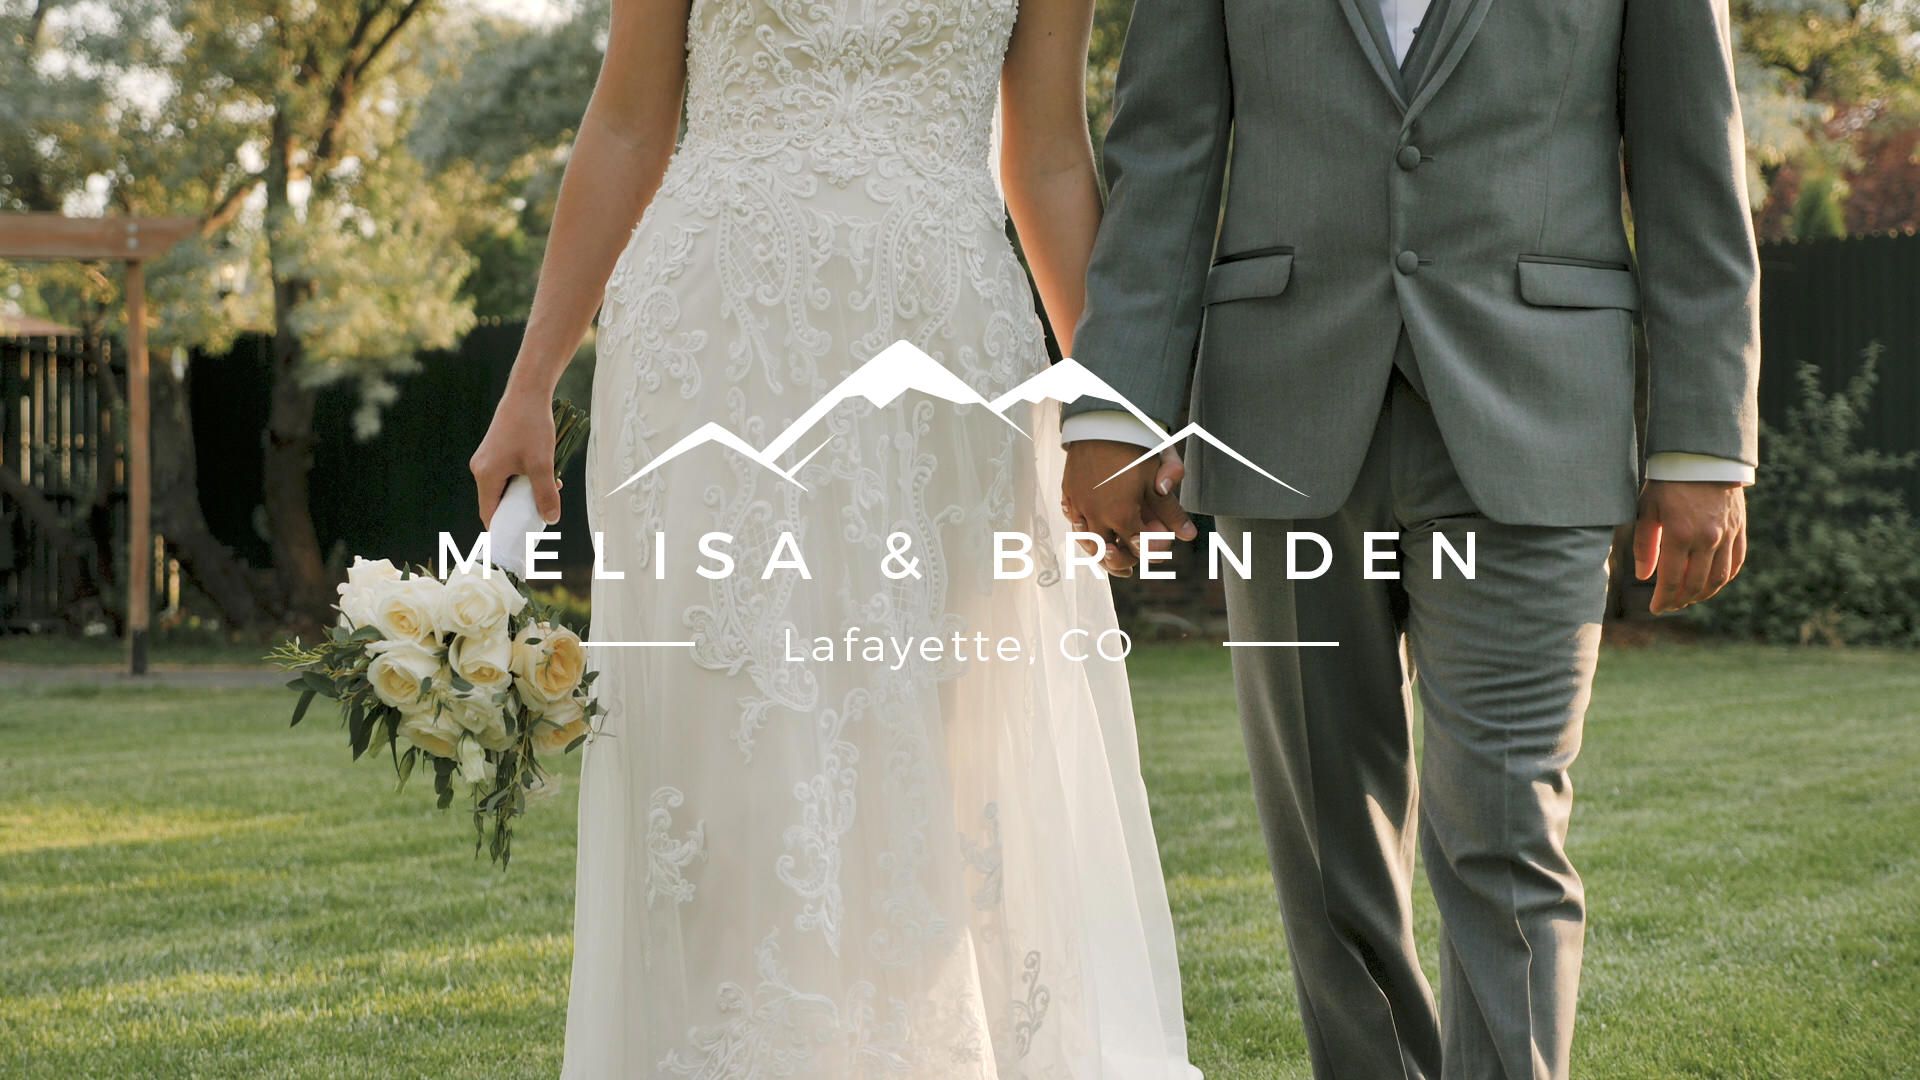 Melisa + Brenden | Lafayette, Colorado | Lionsgate Event Center